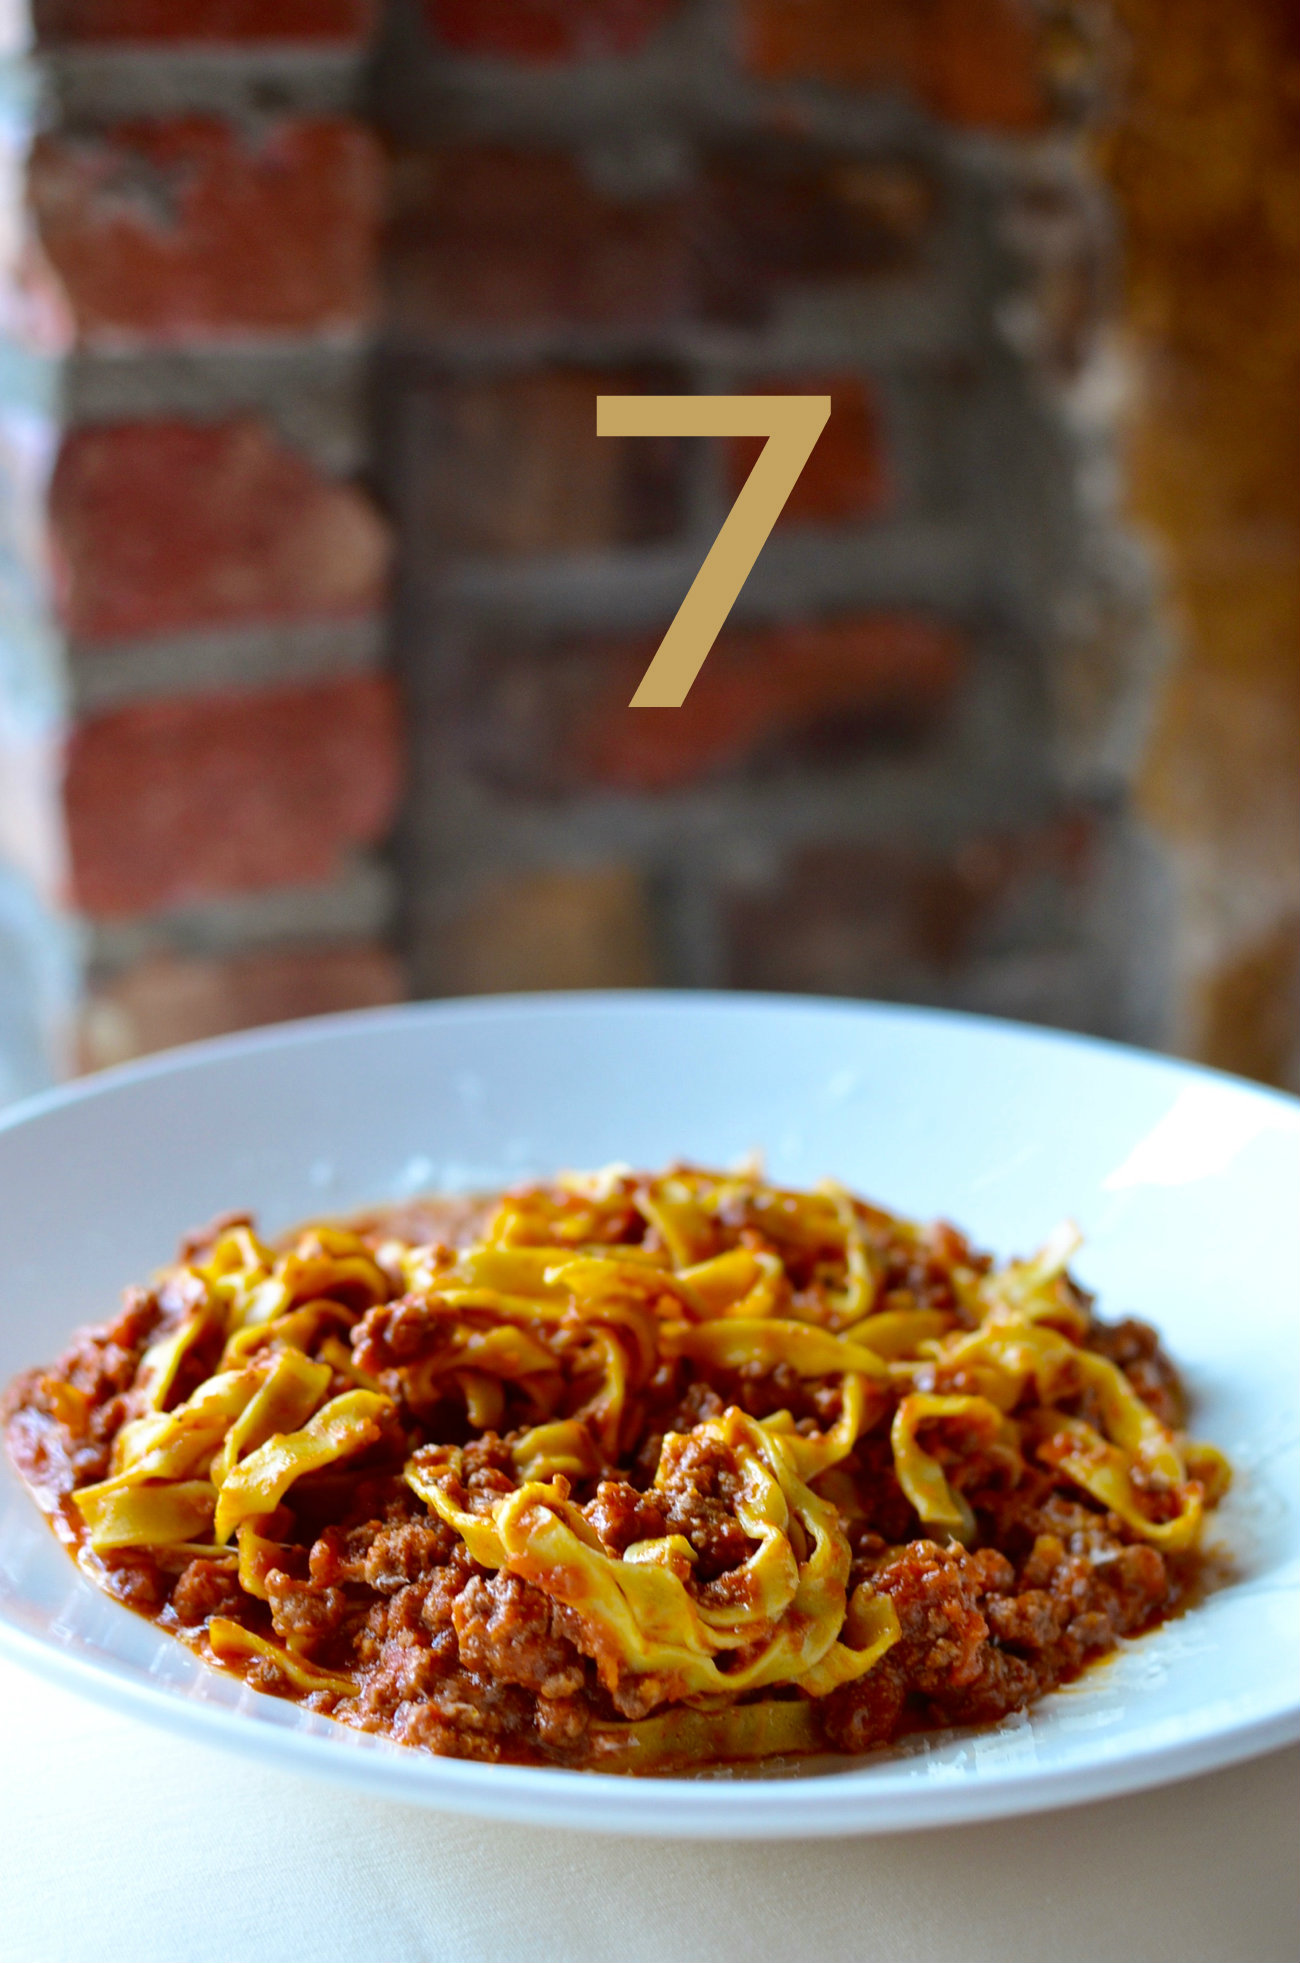 #7 - Nicola's offers a special on Monday nights featuring the tagliatelle bolognese and a house salad for only $15. Whoa, right?! / Image: Leah Zipperstein, Cincinnati Refined